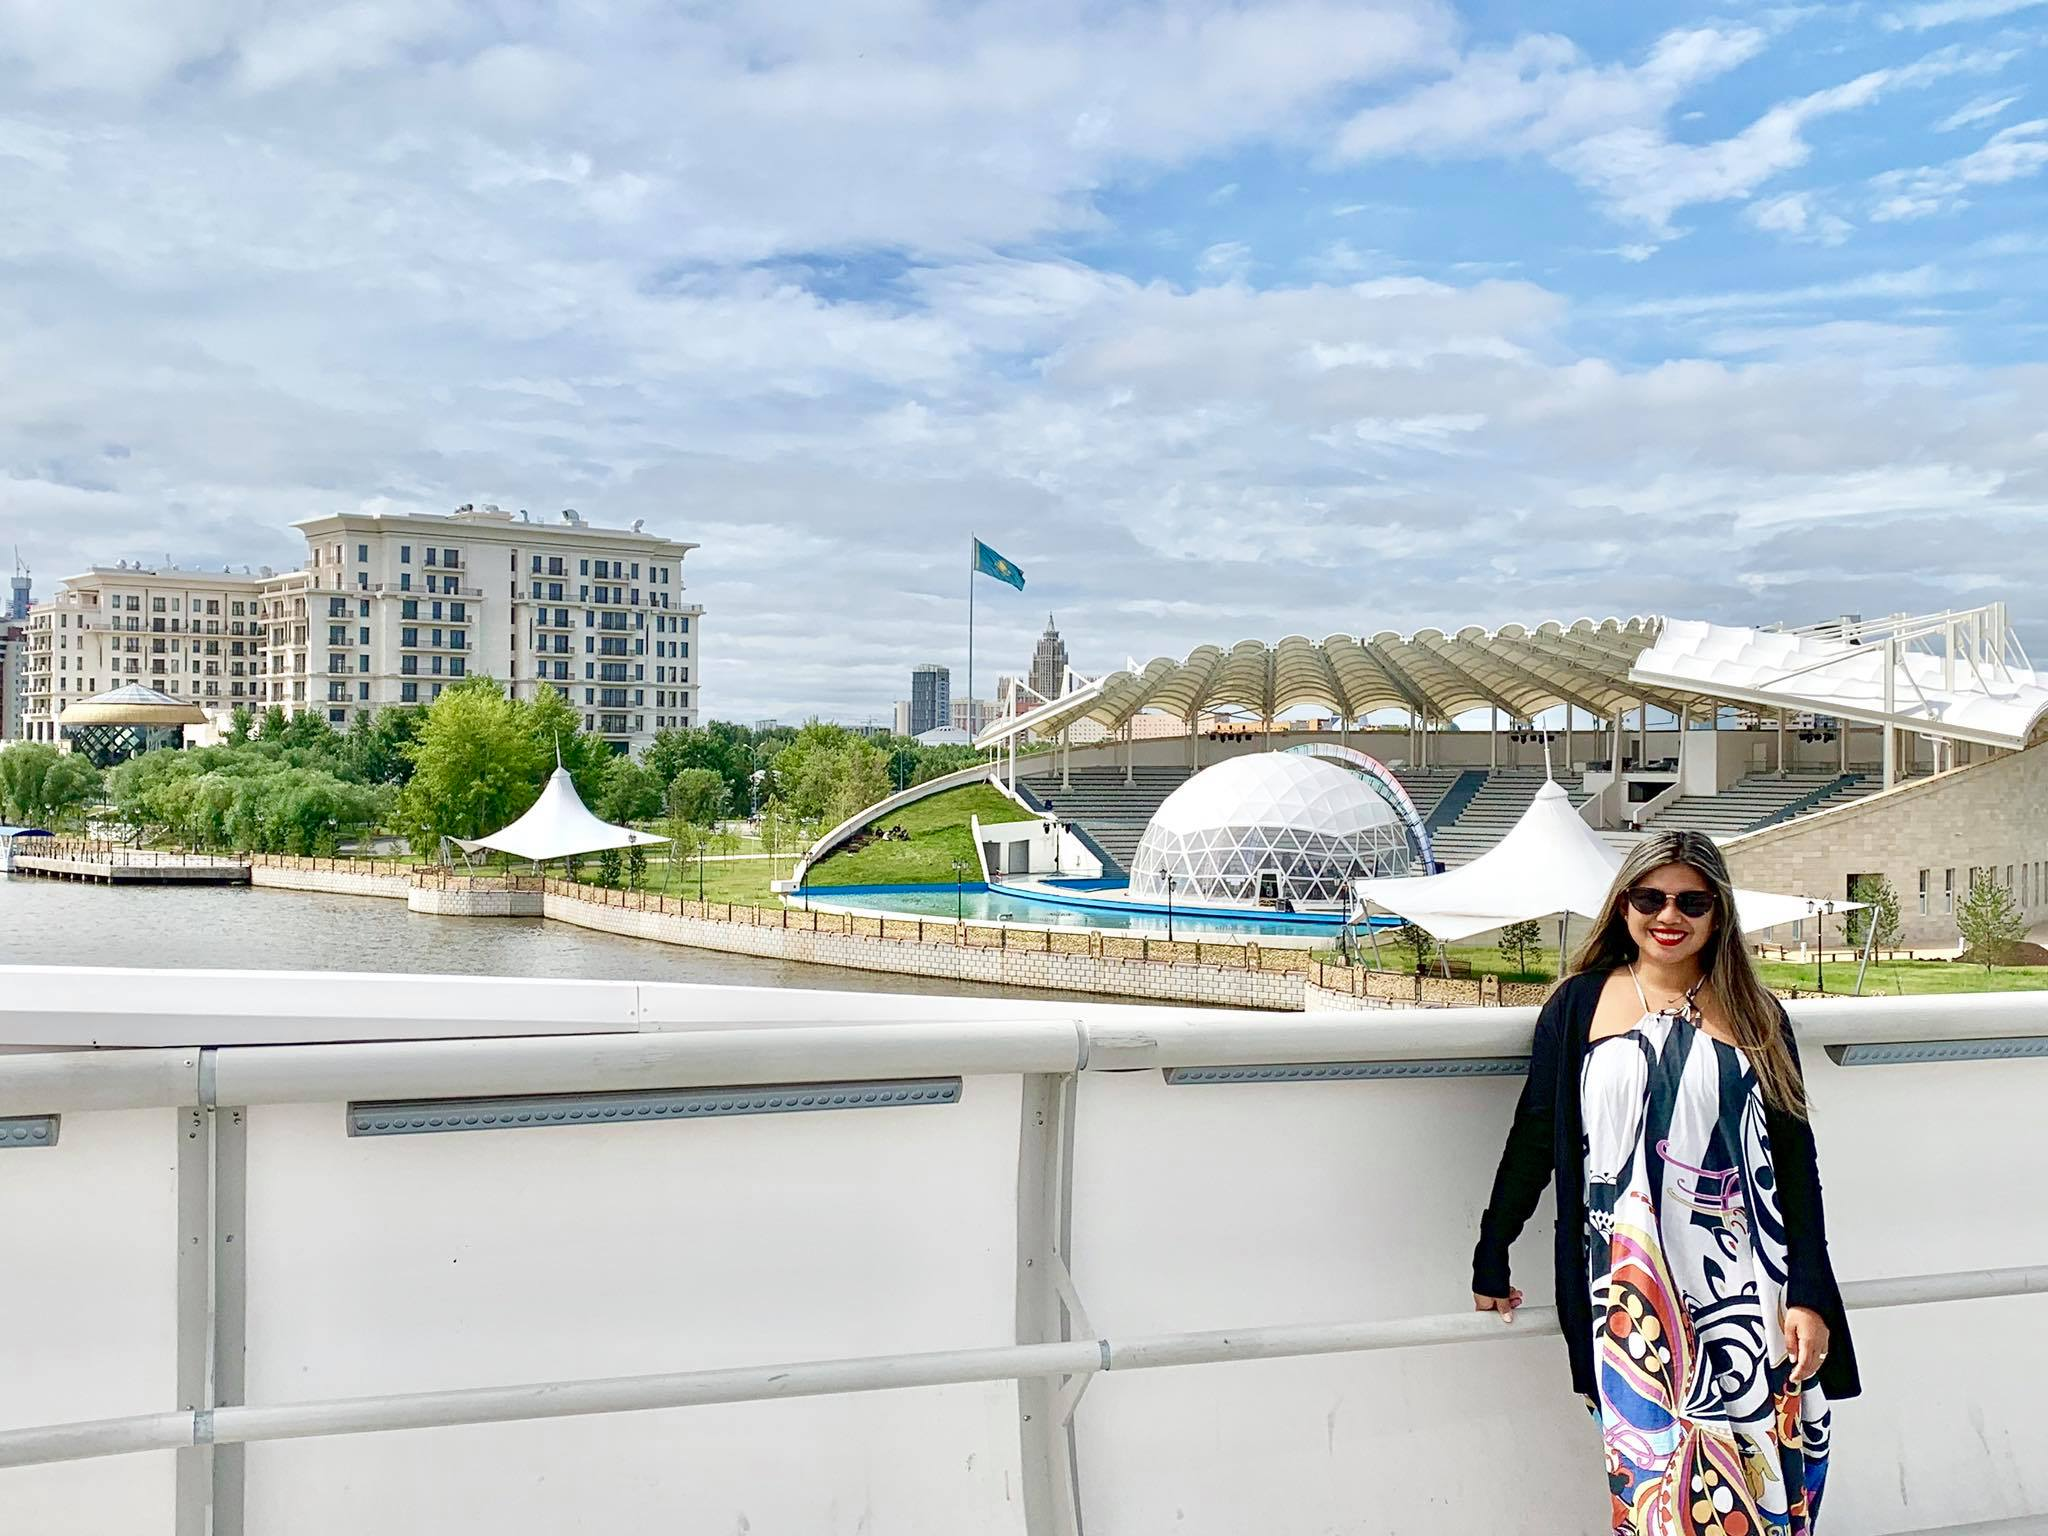 Kach Solo Travels in 2019 Nursultan  Astana - the City of the Future13.jpg